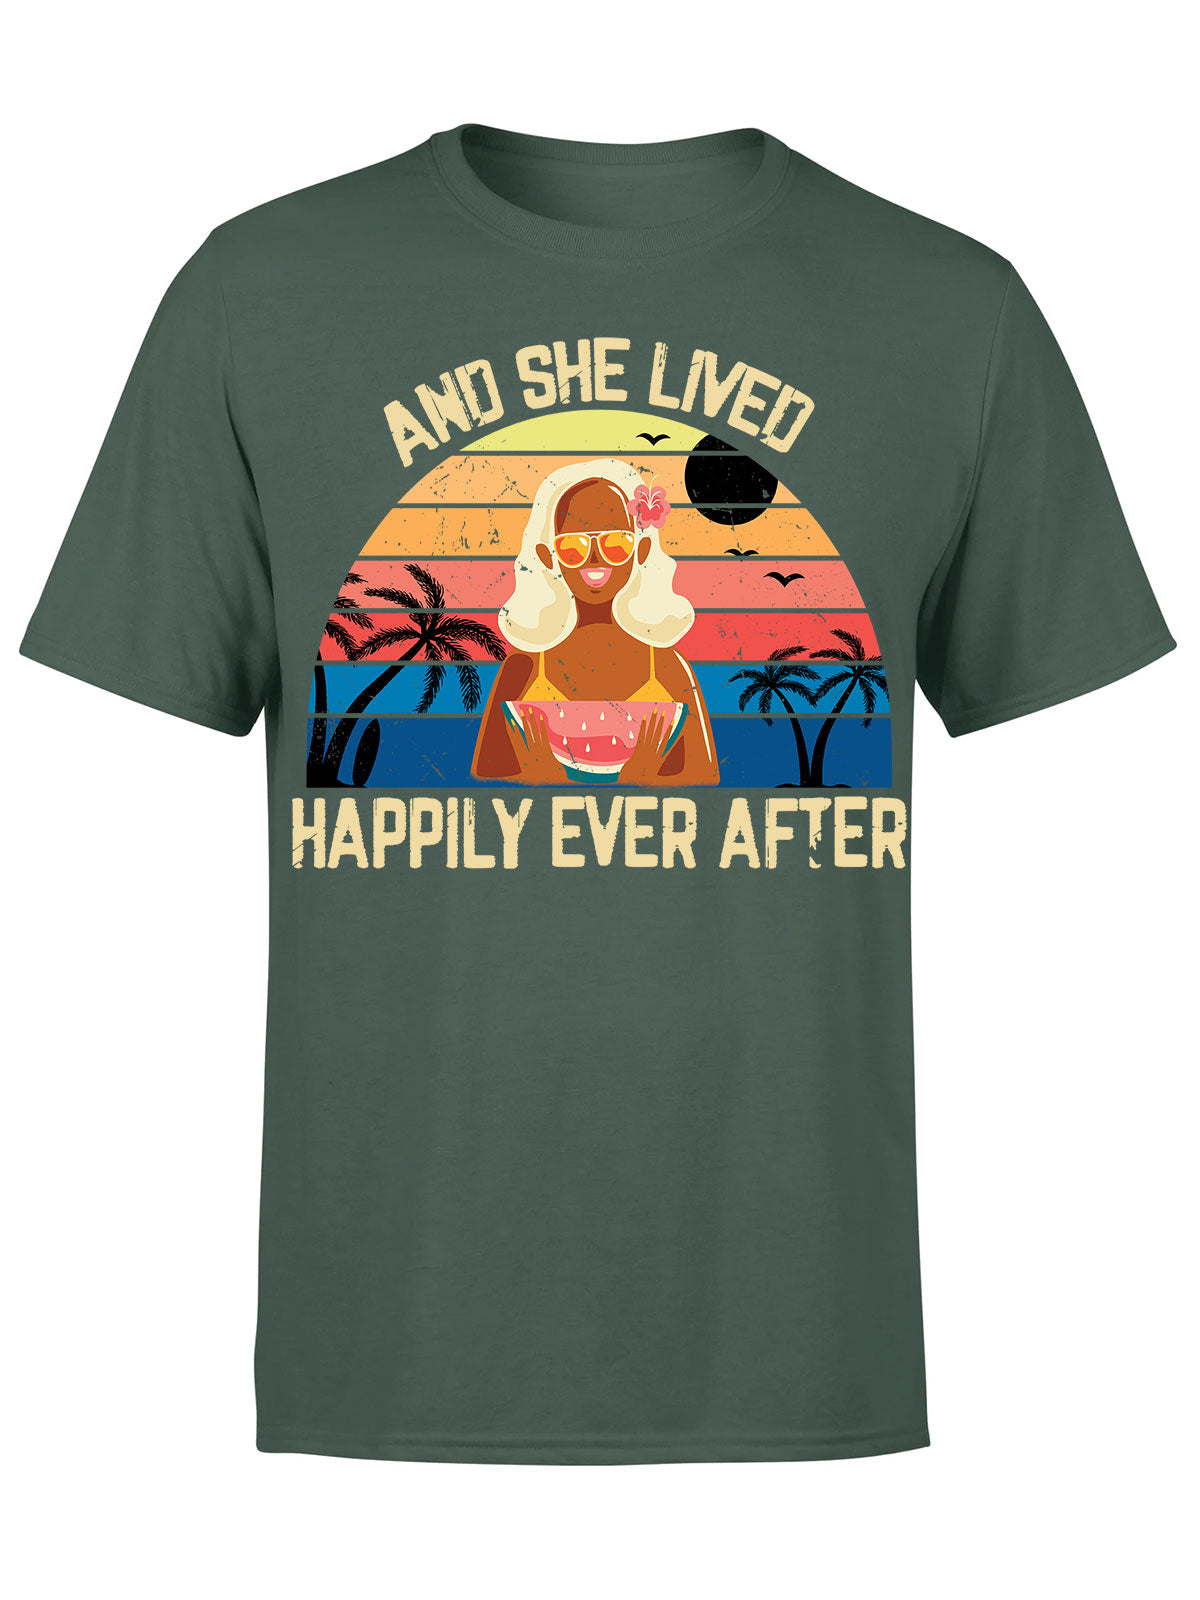 Classic T-shirt - Happily ever after - Summer shirt, Woman shirt - 6119